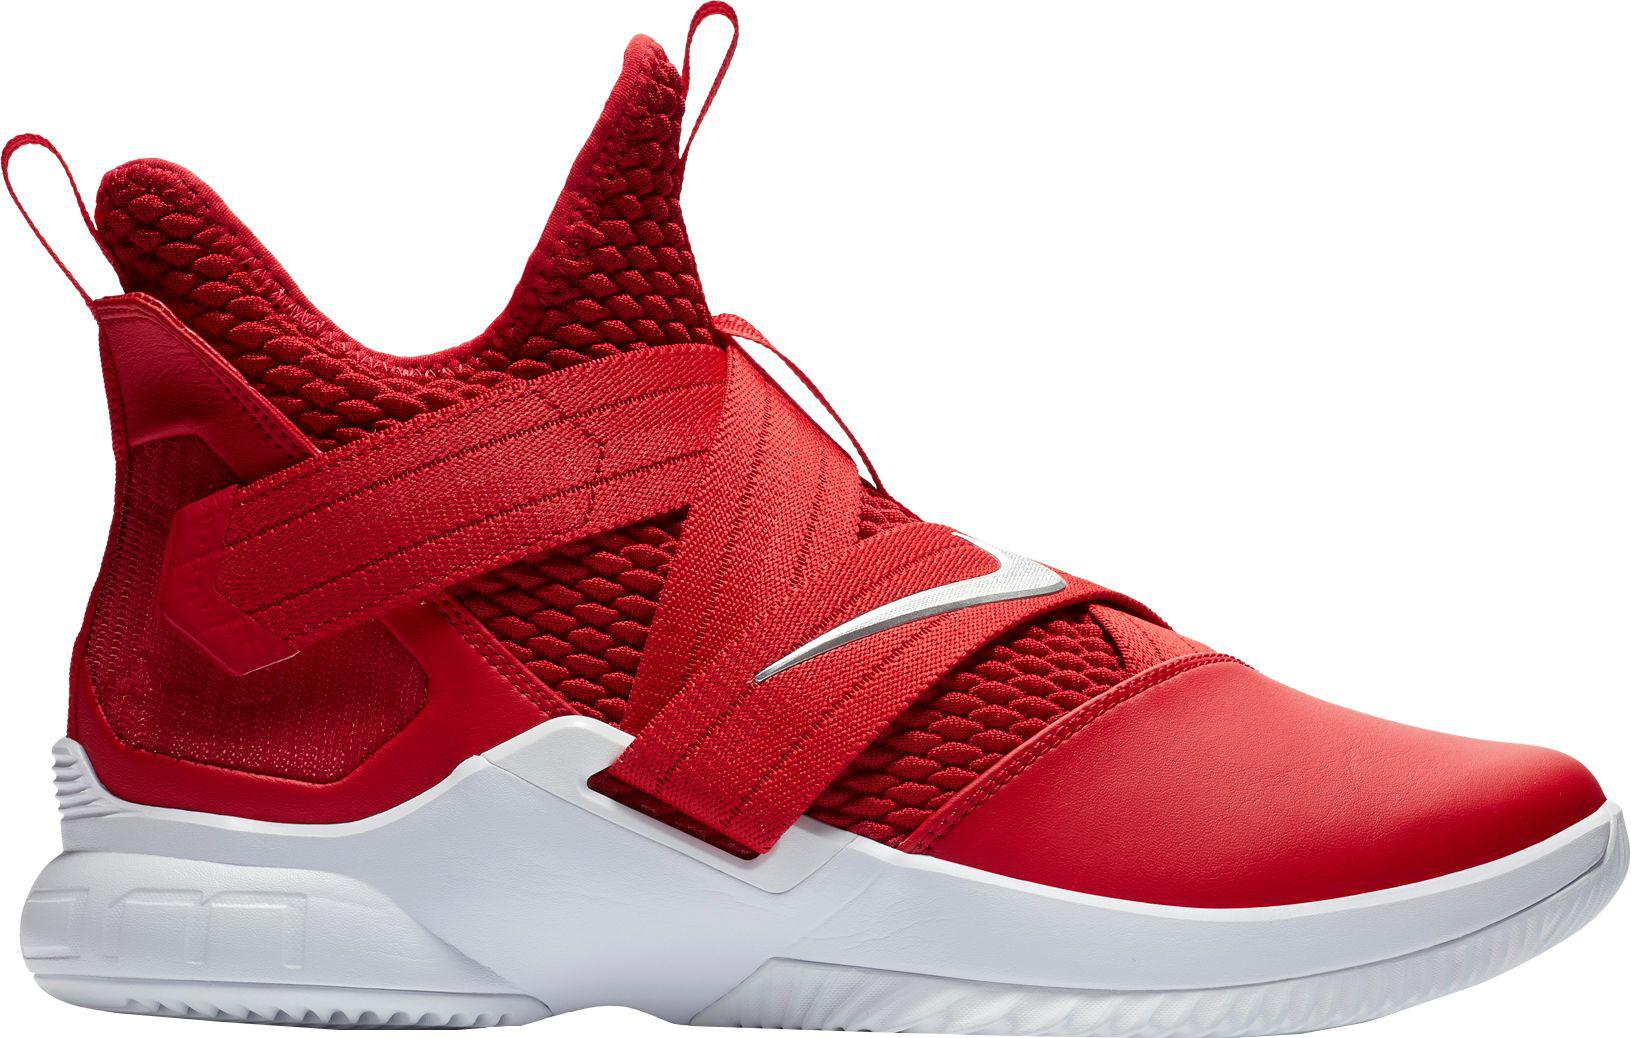 more photos 3eb56 bf1e5 Nike Red Zoom Lebron Soldier Xii Tb Basketball Shoes for men